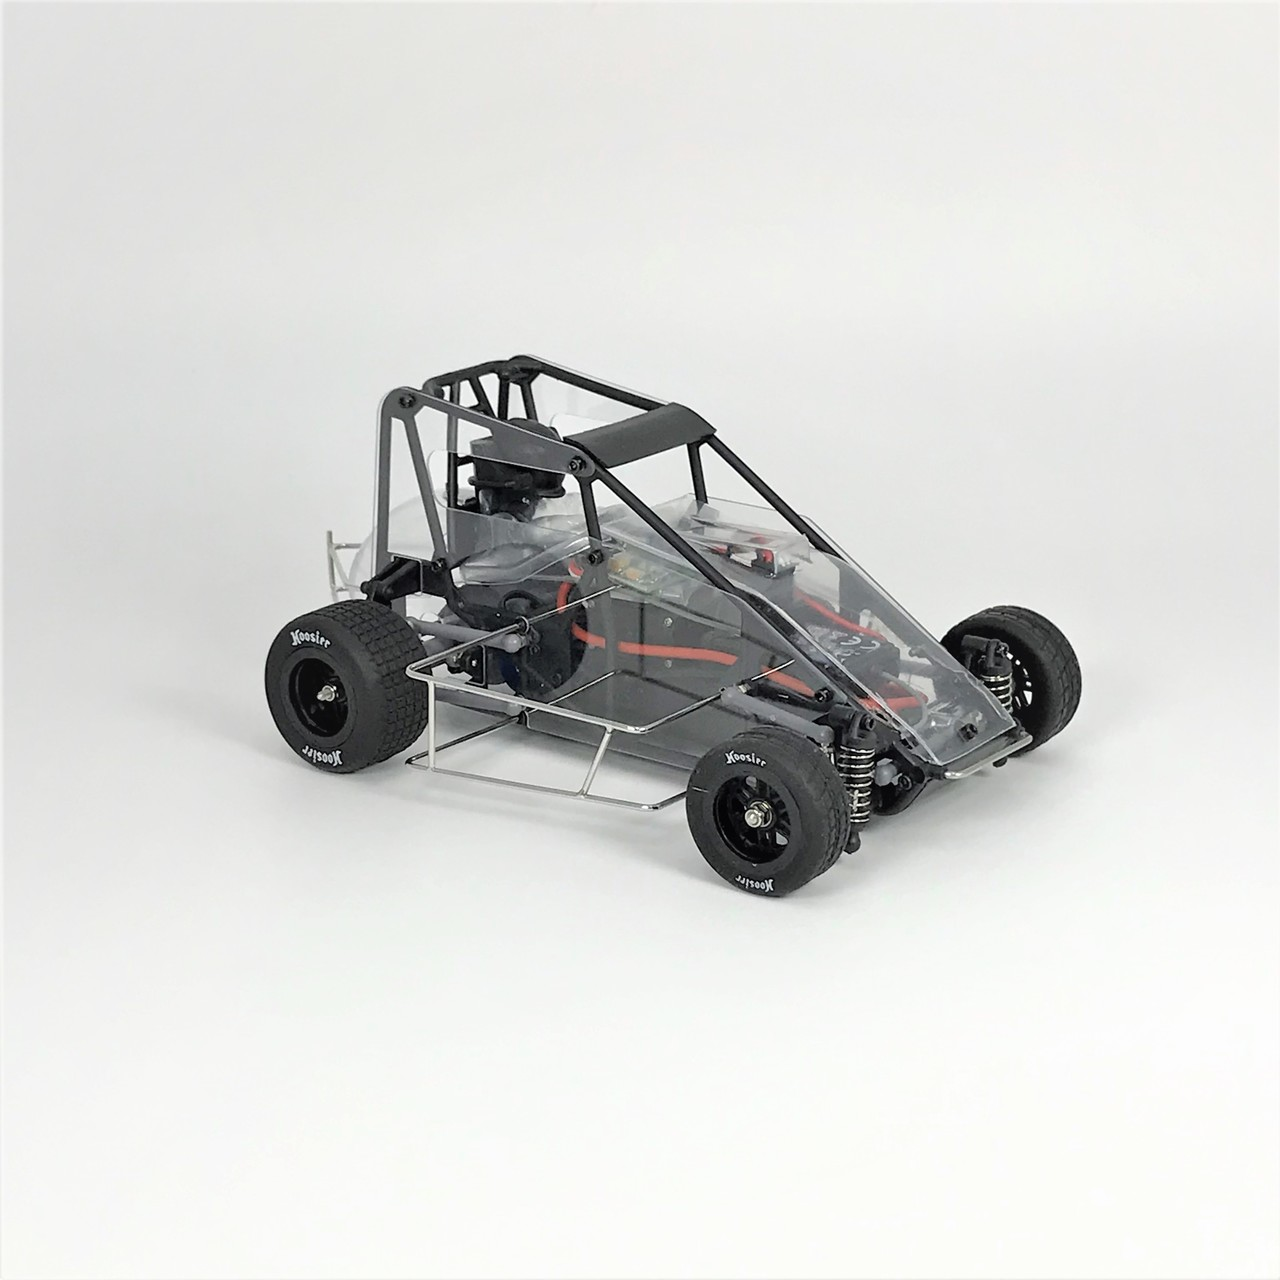 Buy One, Get One Half-off During the 1RC Racing Father's Day Sale